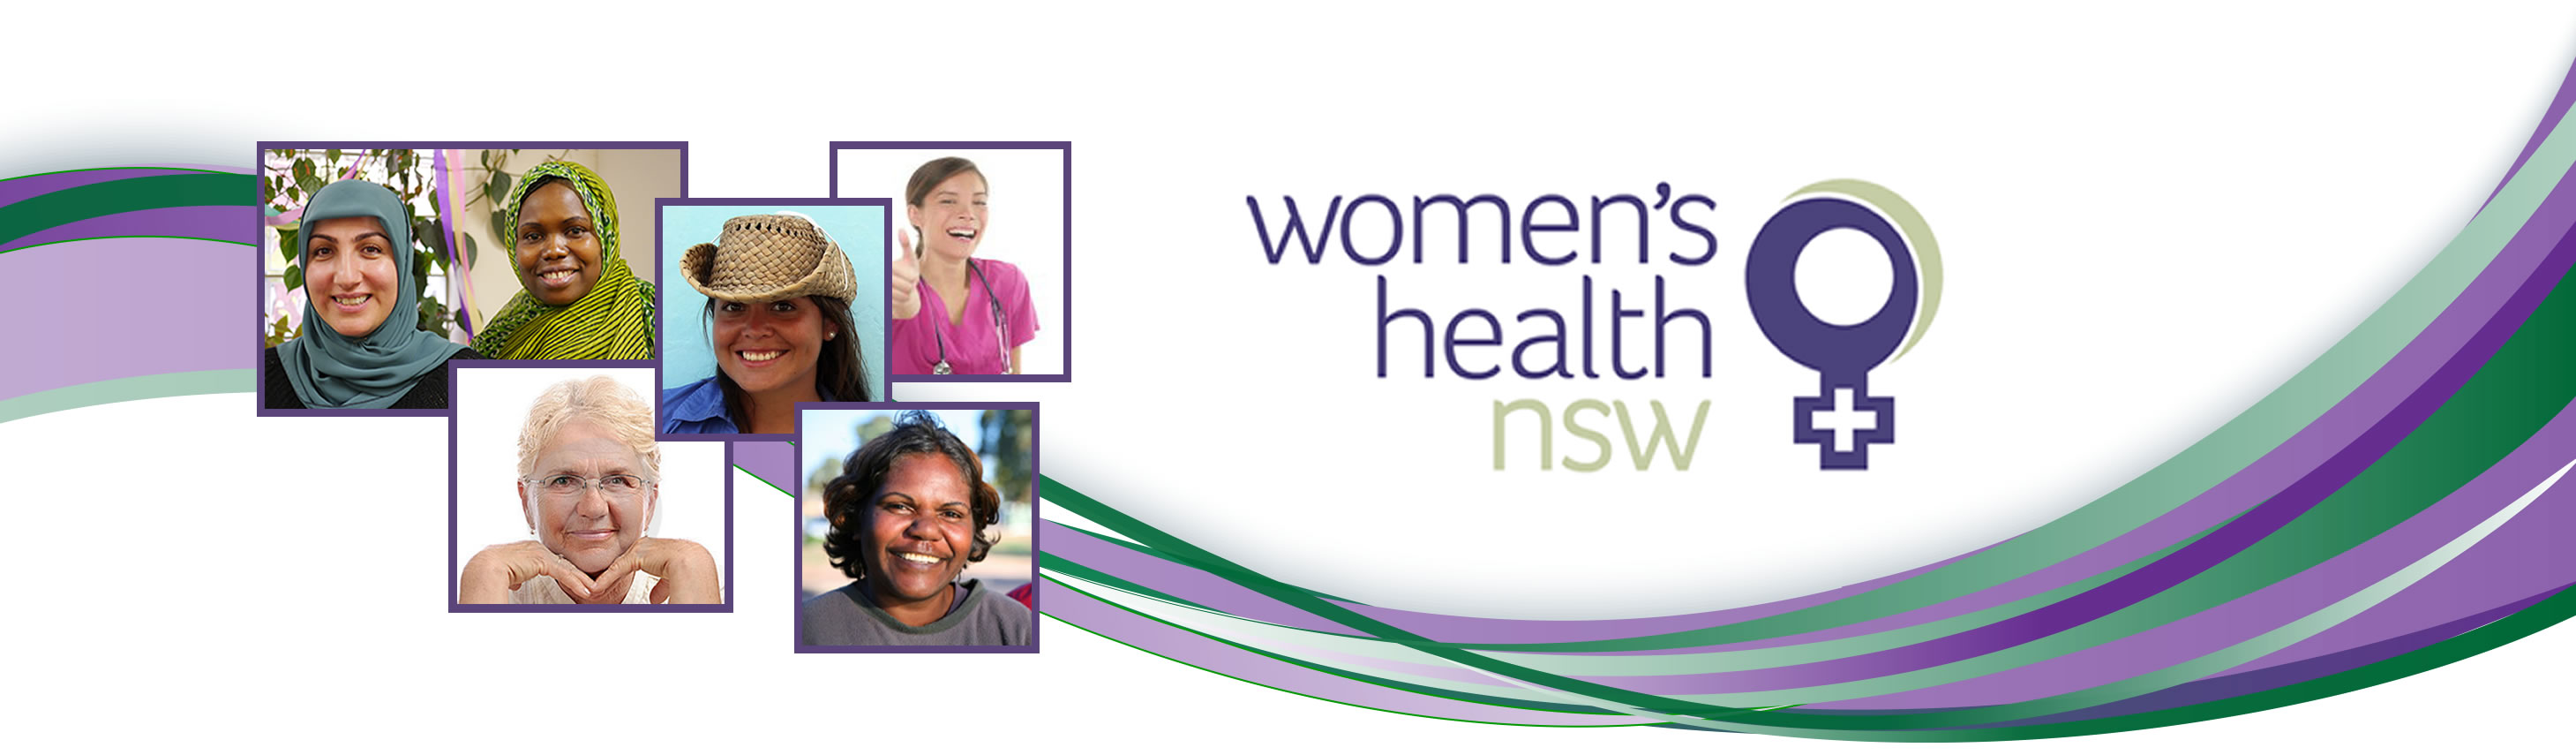 Women's Health NSW